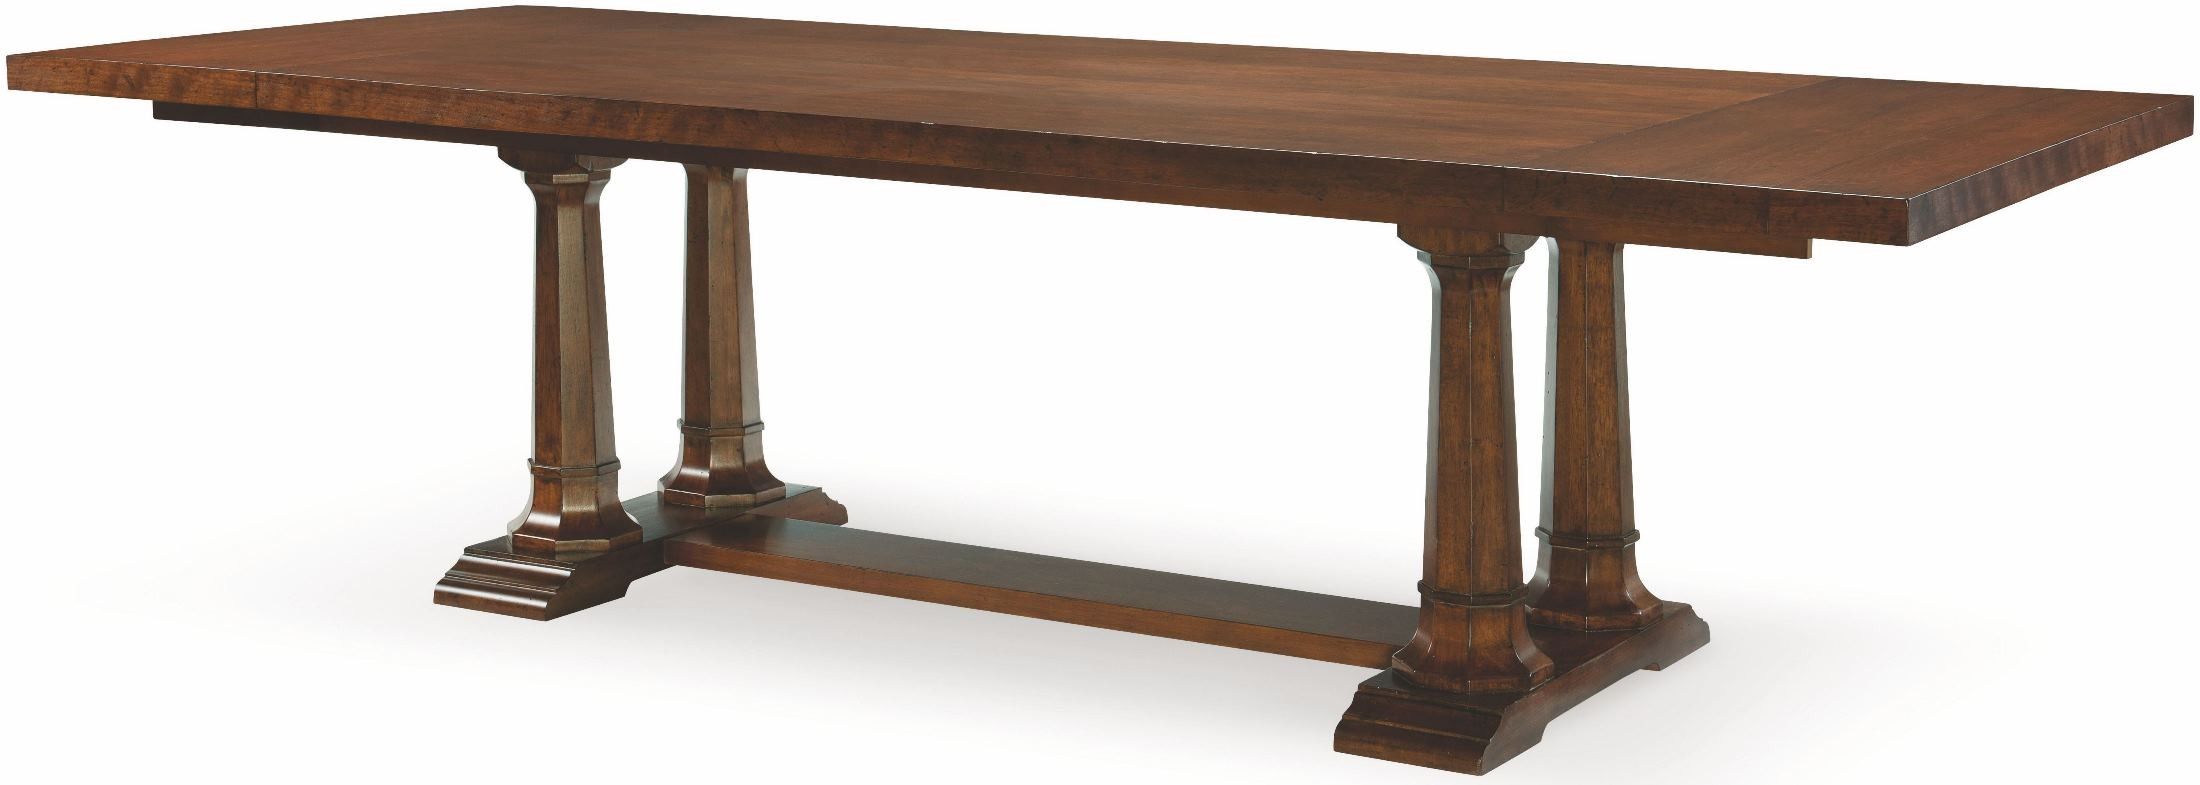 upstate conciare extendable trestle dining table from rachael ray home coleman furniture. Black Bedroom Furniture Sets. Home Design Ideas